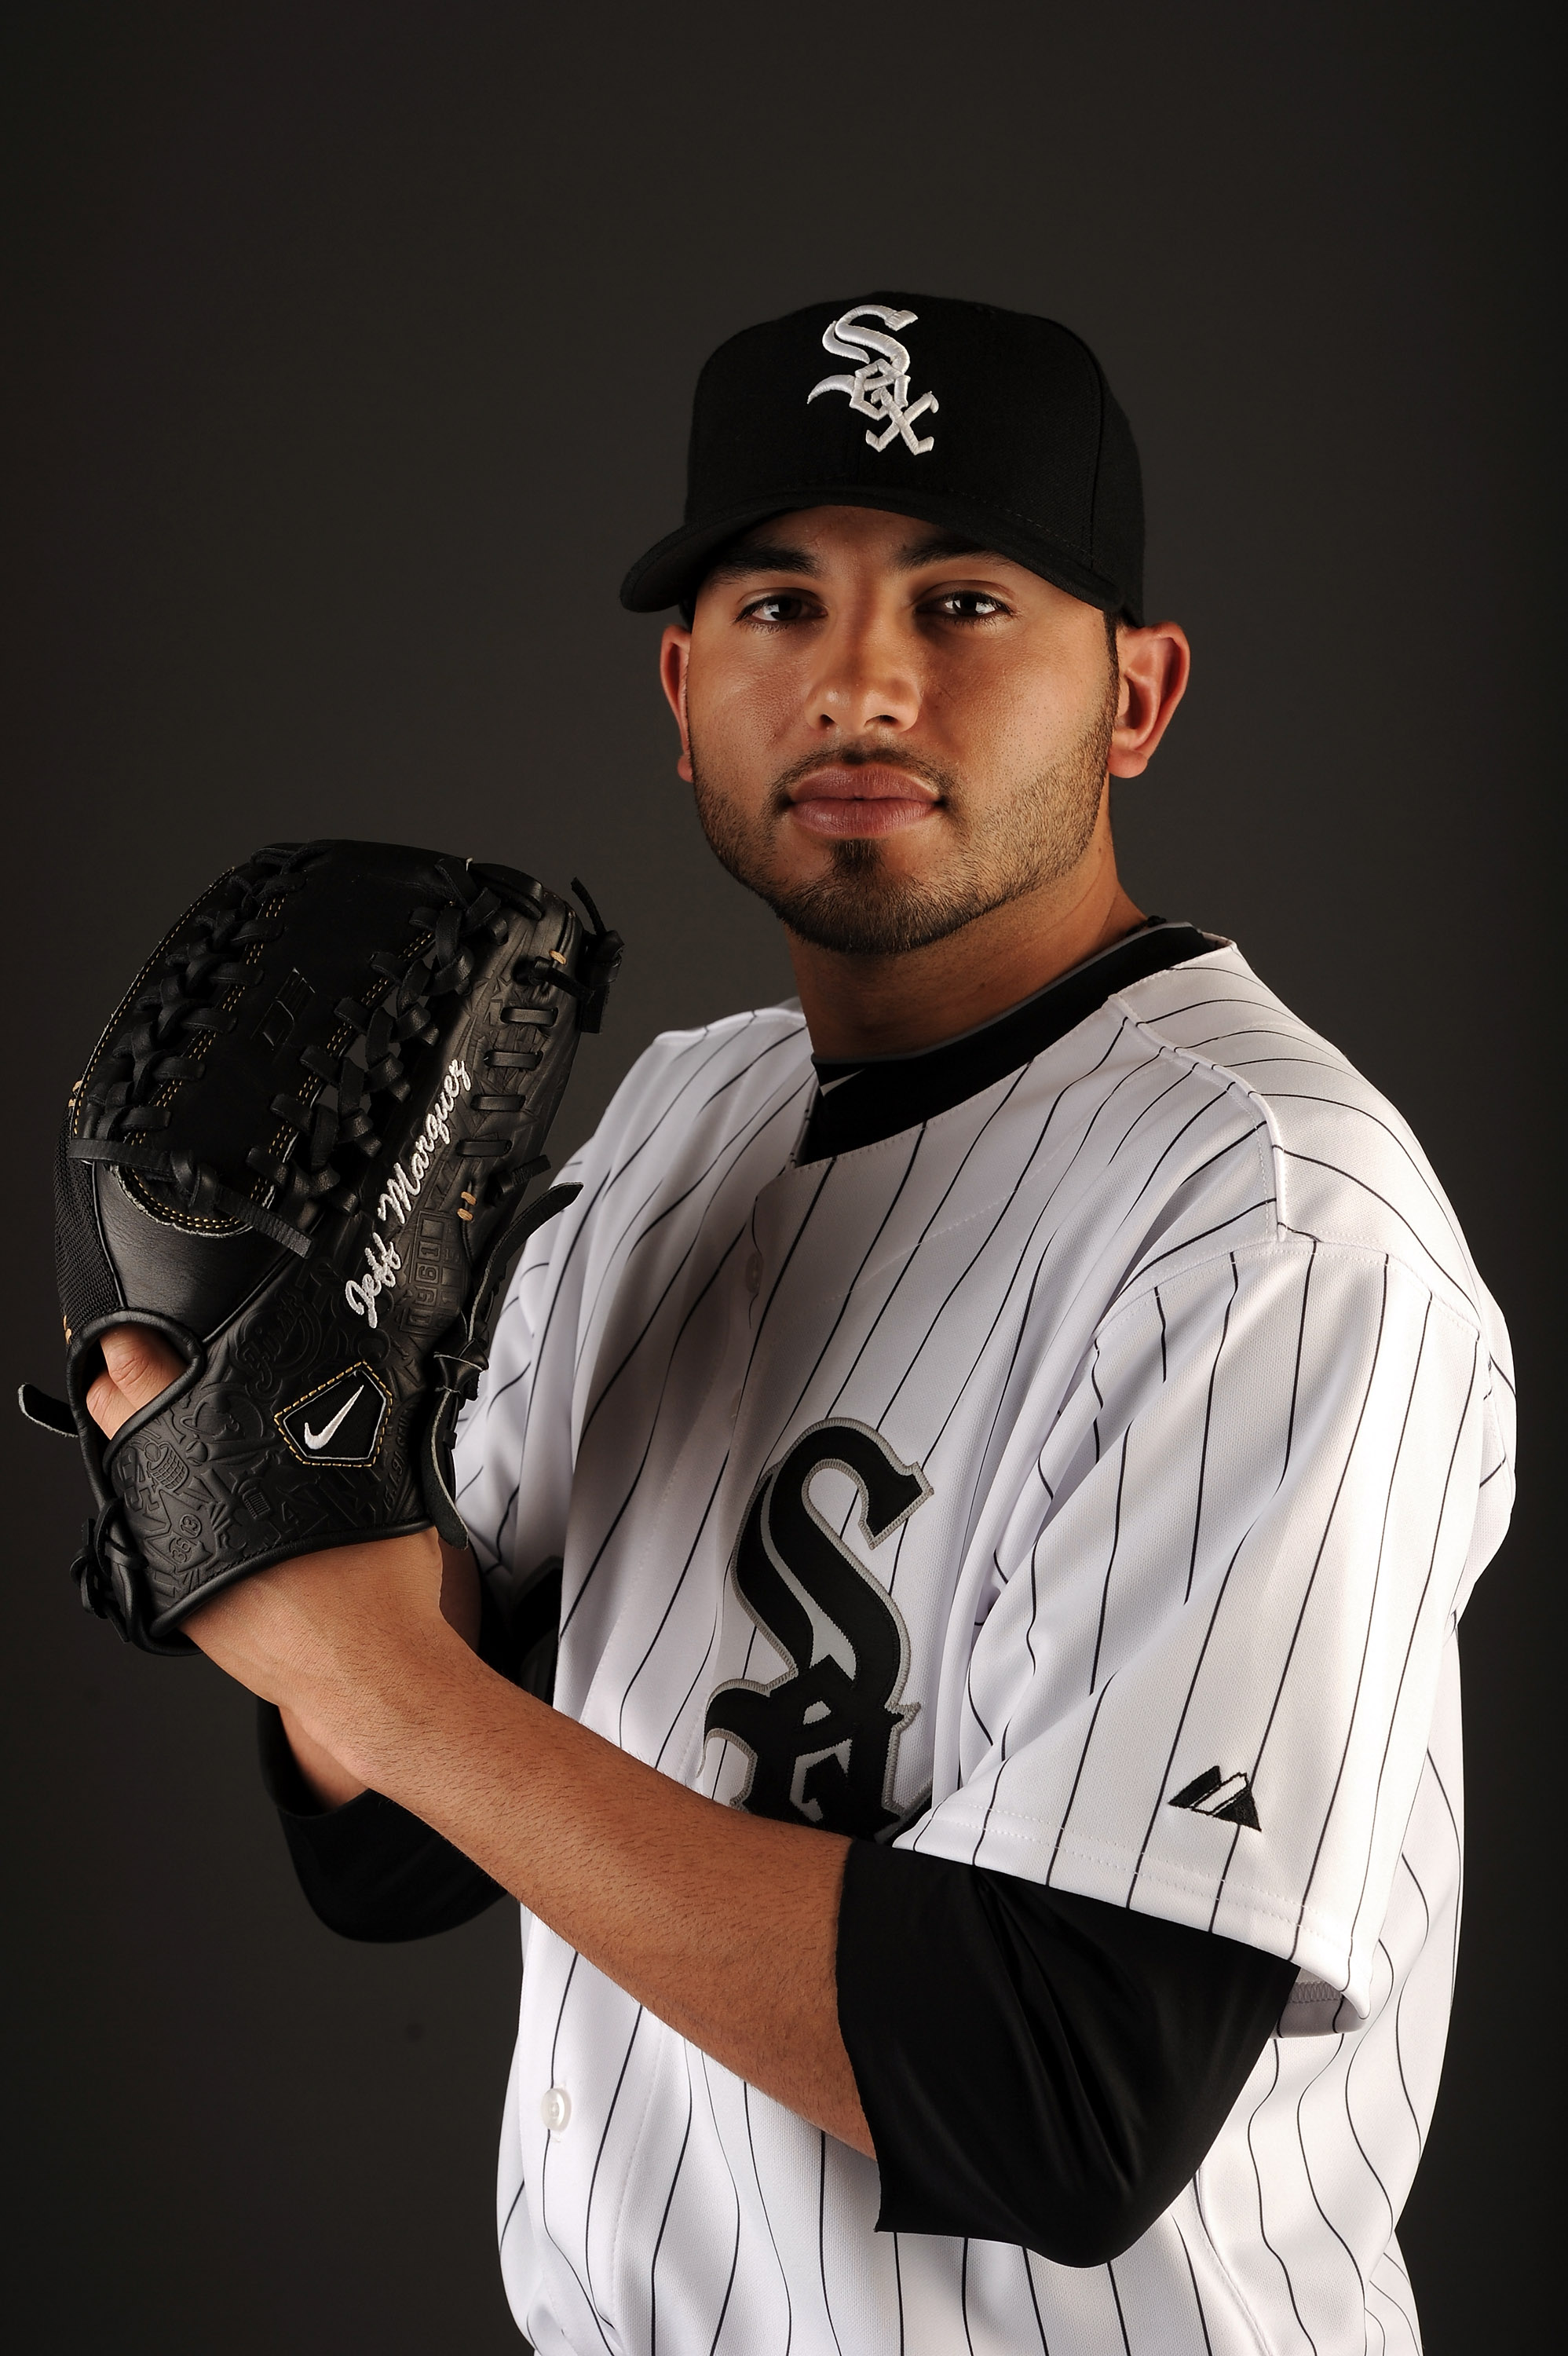 GLENDALE, AZ - FEBRUARY 26:  Jeff Marquez #48 of the Chicago White Sox poses for a photo on photo day at Camelback Ranch on February 26, 2011 in Glendale, Arizona.  (Photo by Harry How/Getty Images)